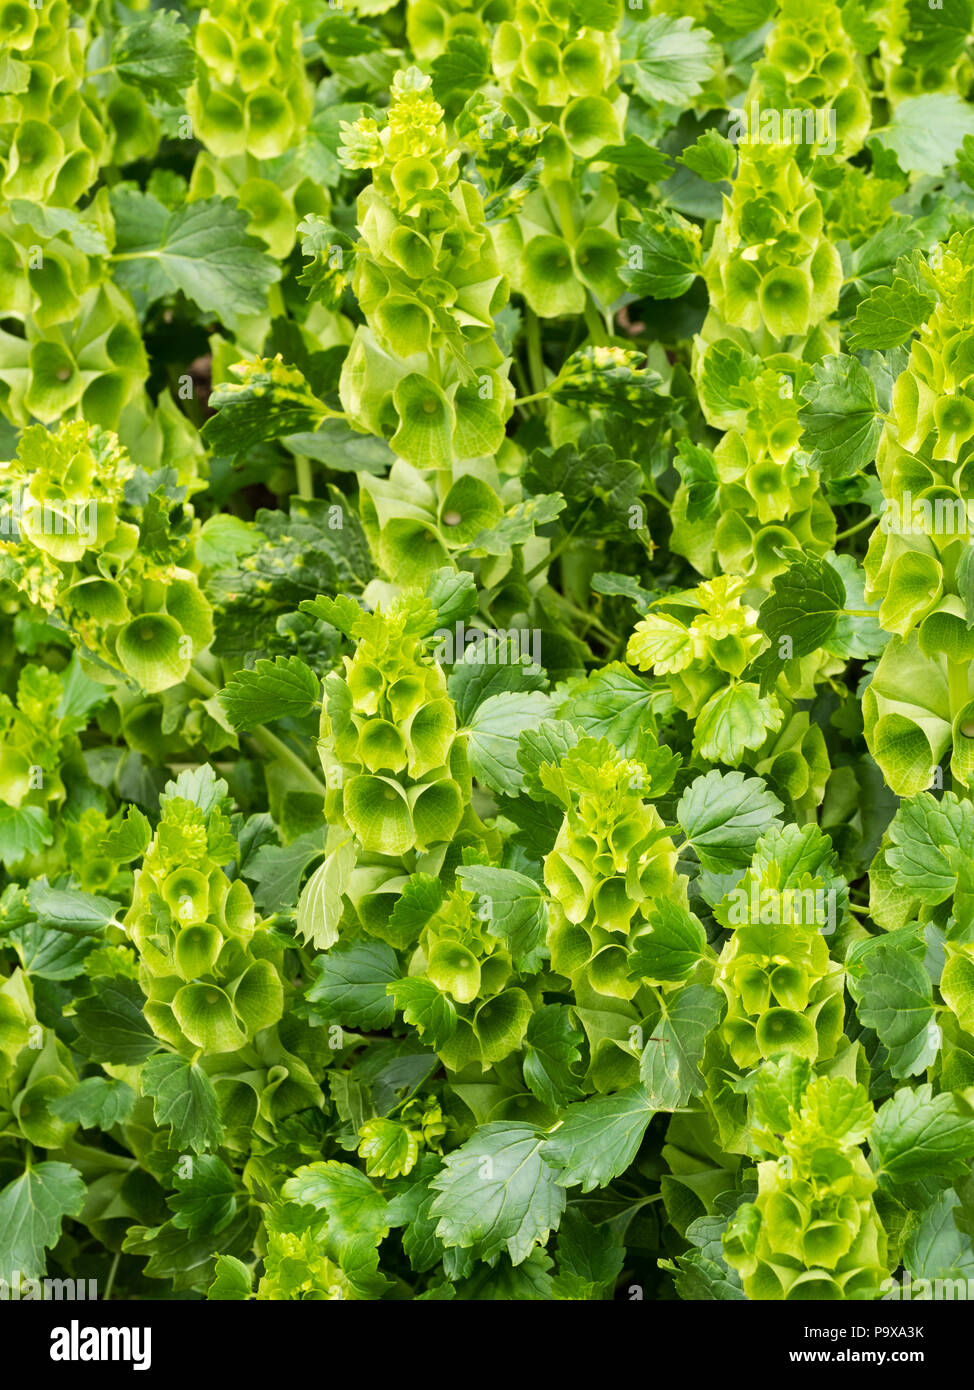 Green flowers in the upright spikes of the hardy annual flower arranger's bloom, Bells of Ireland, Moluccella laevis - Stock Image